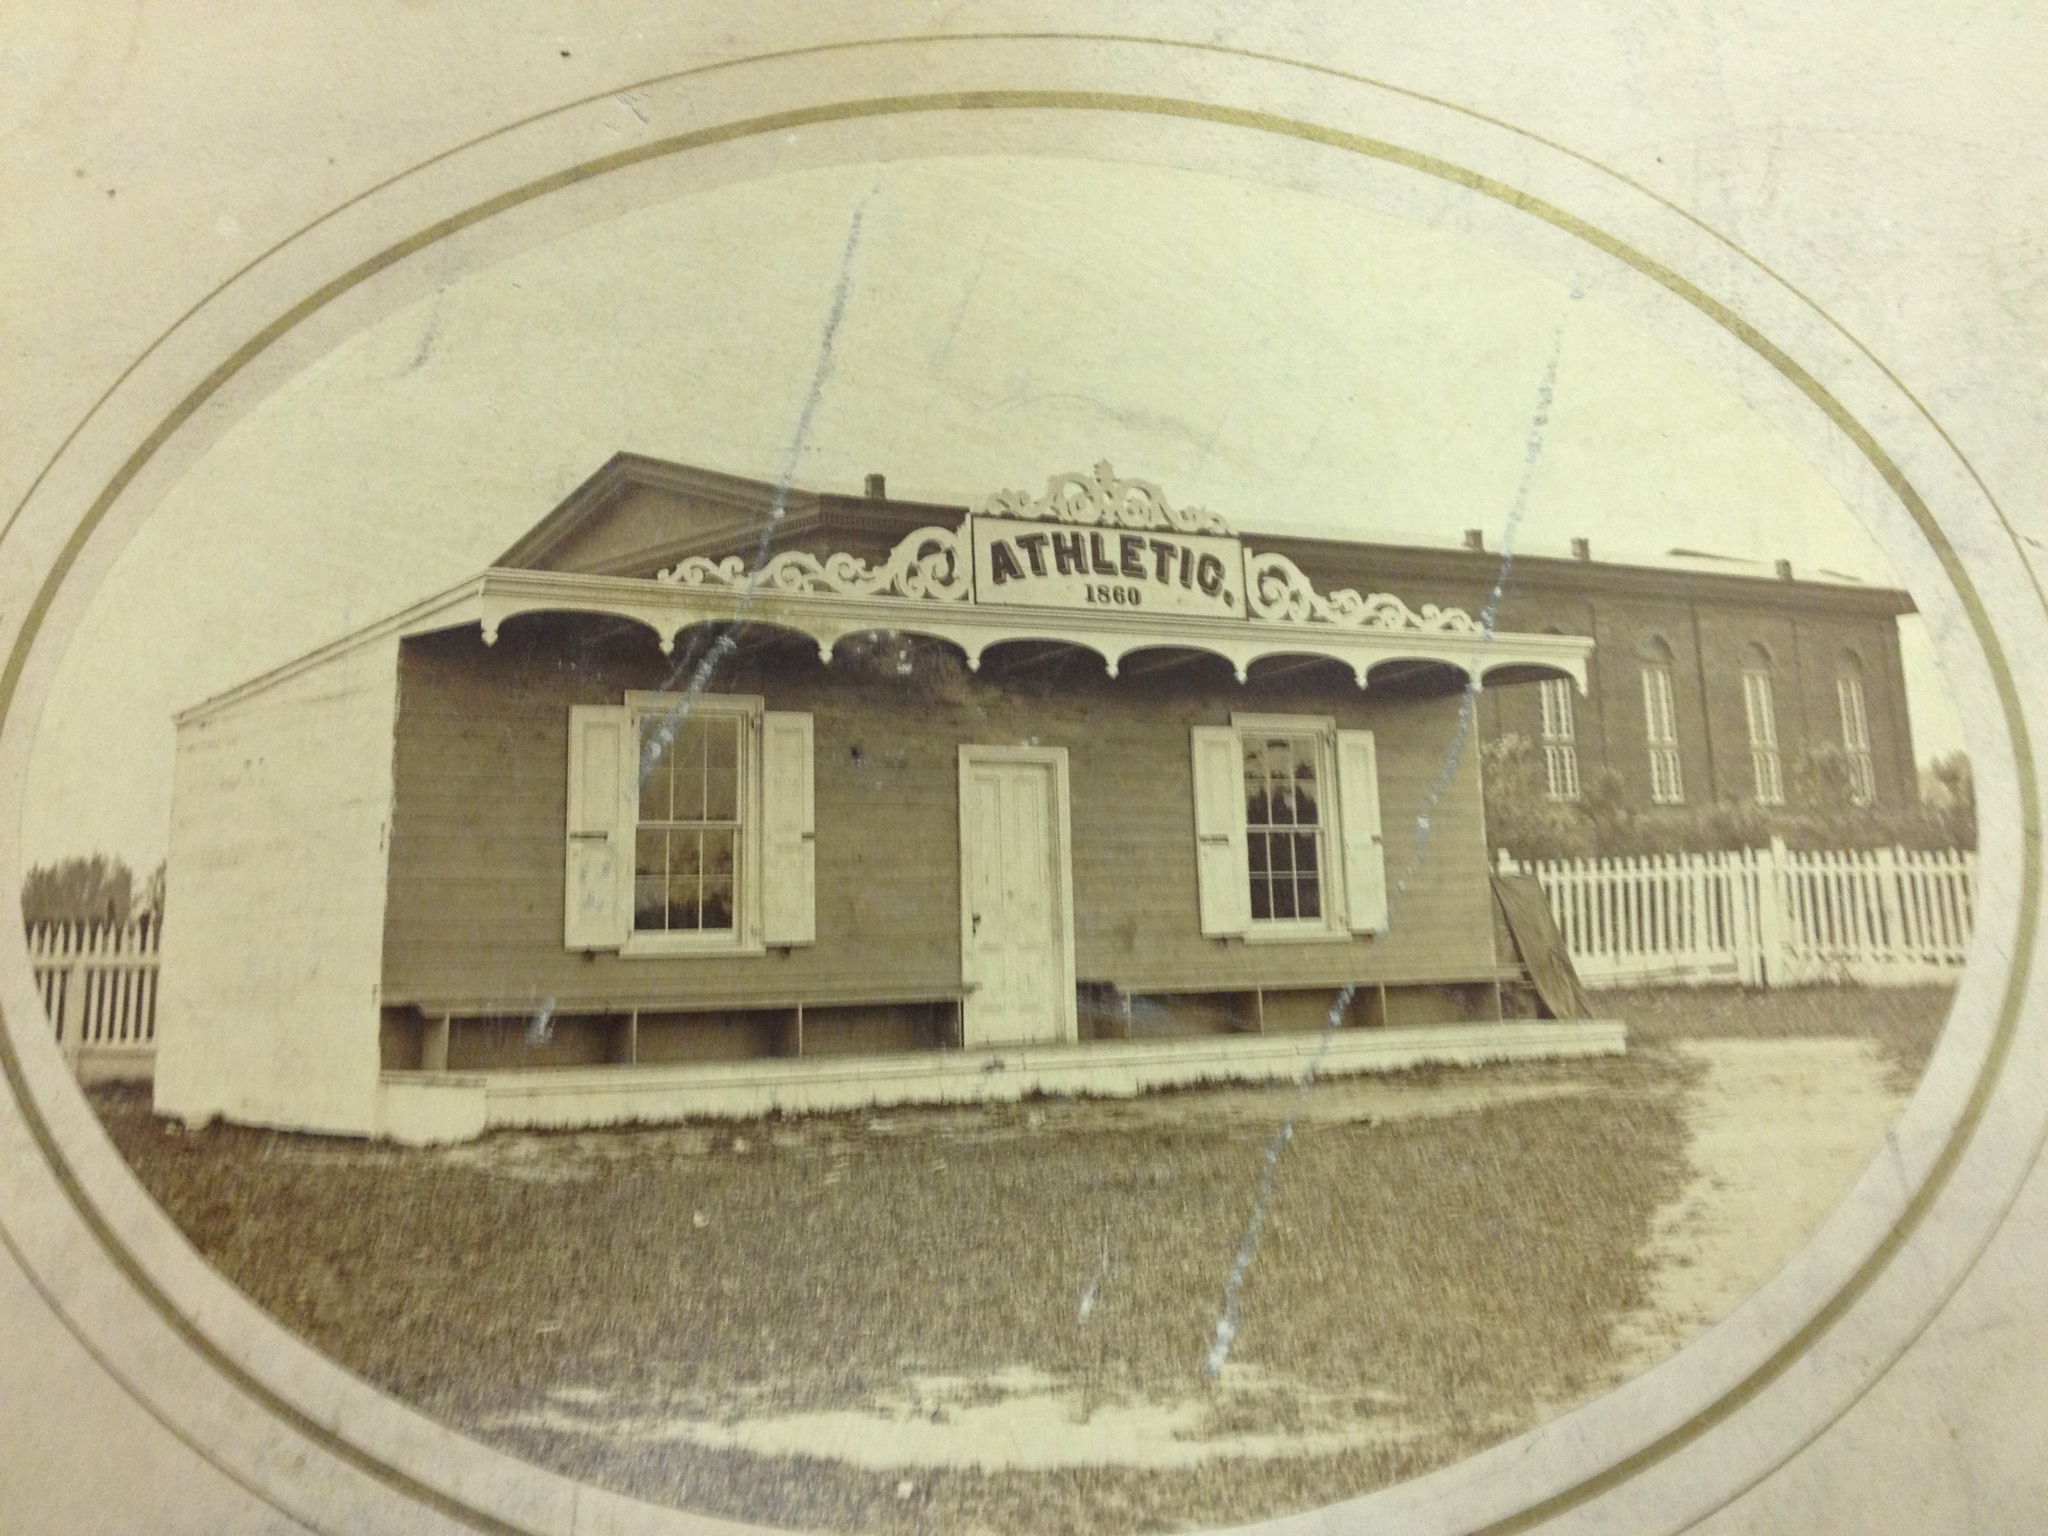 The clubhouse of the Athletic Base Ball Club of Philadelphia